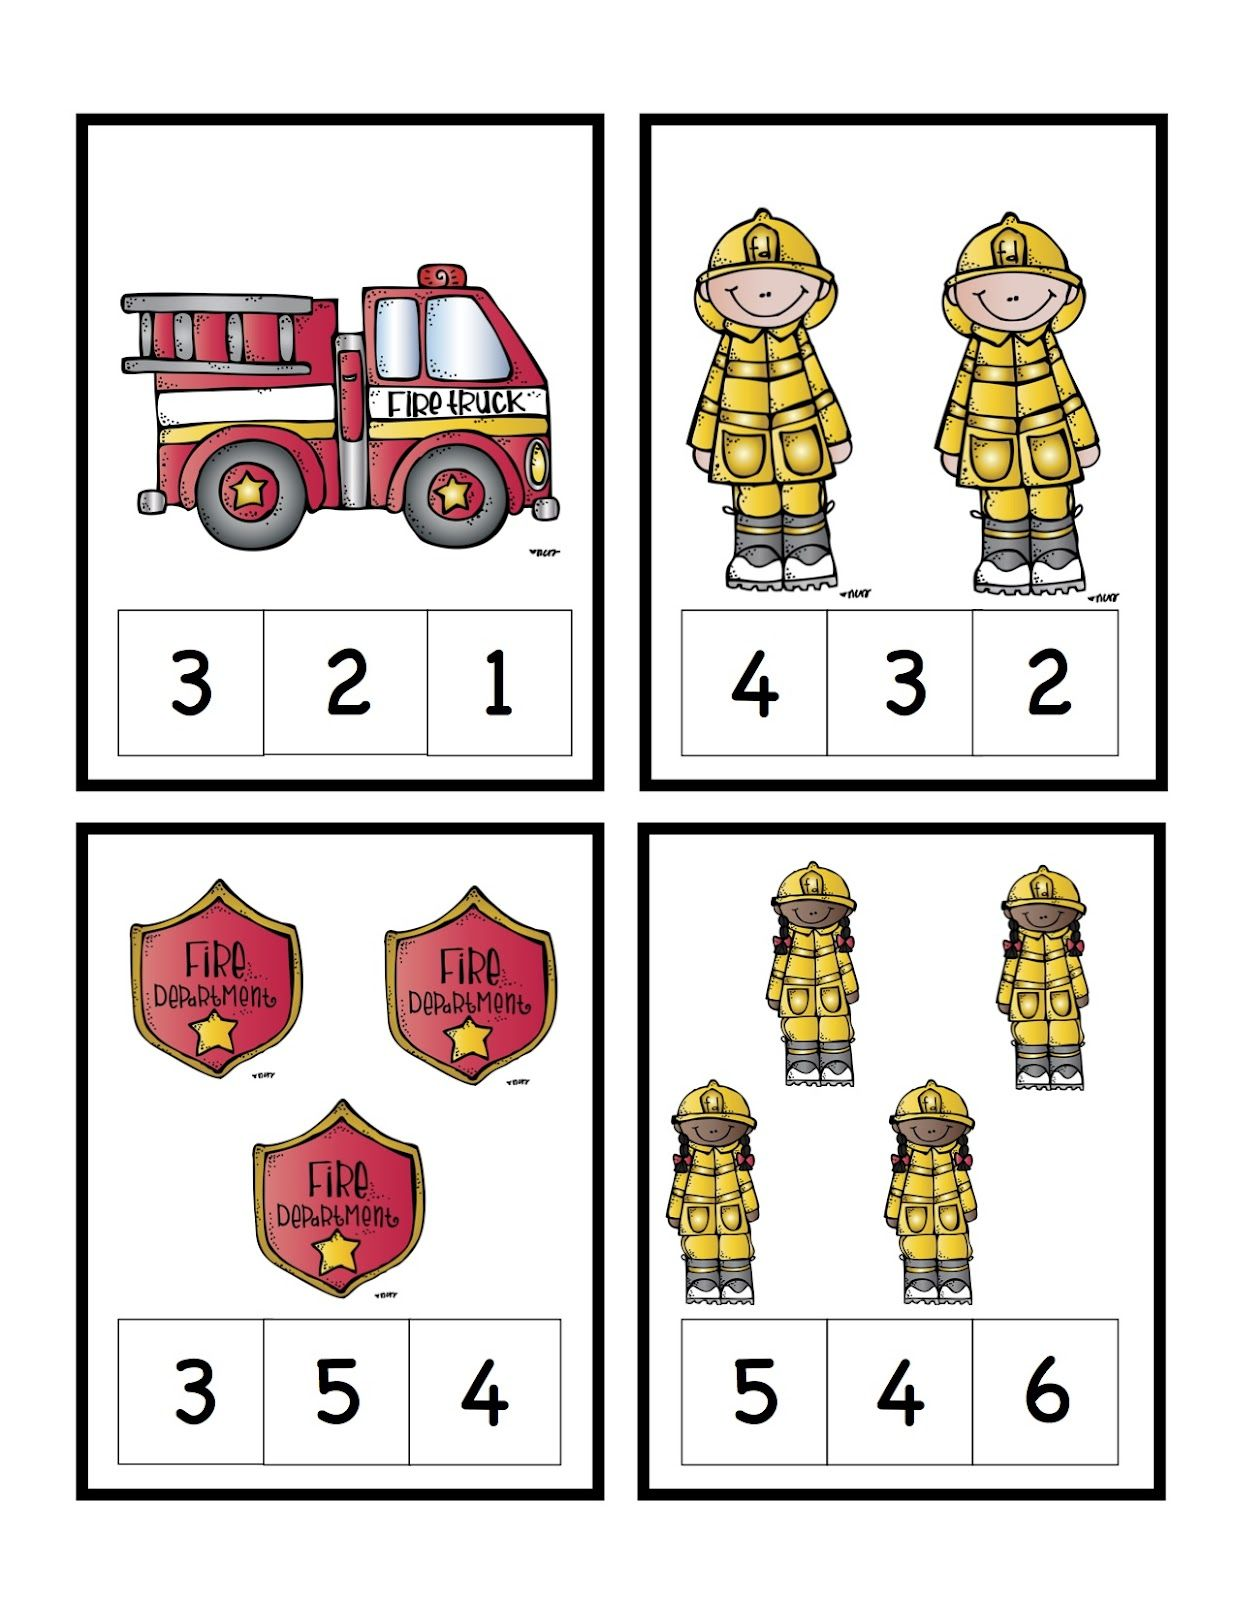 Preschool Printables: Fire Safety Number Cards | Fire ...